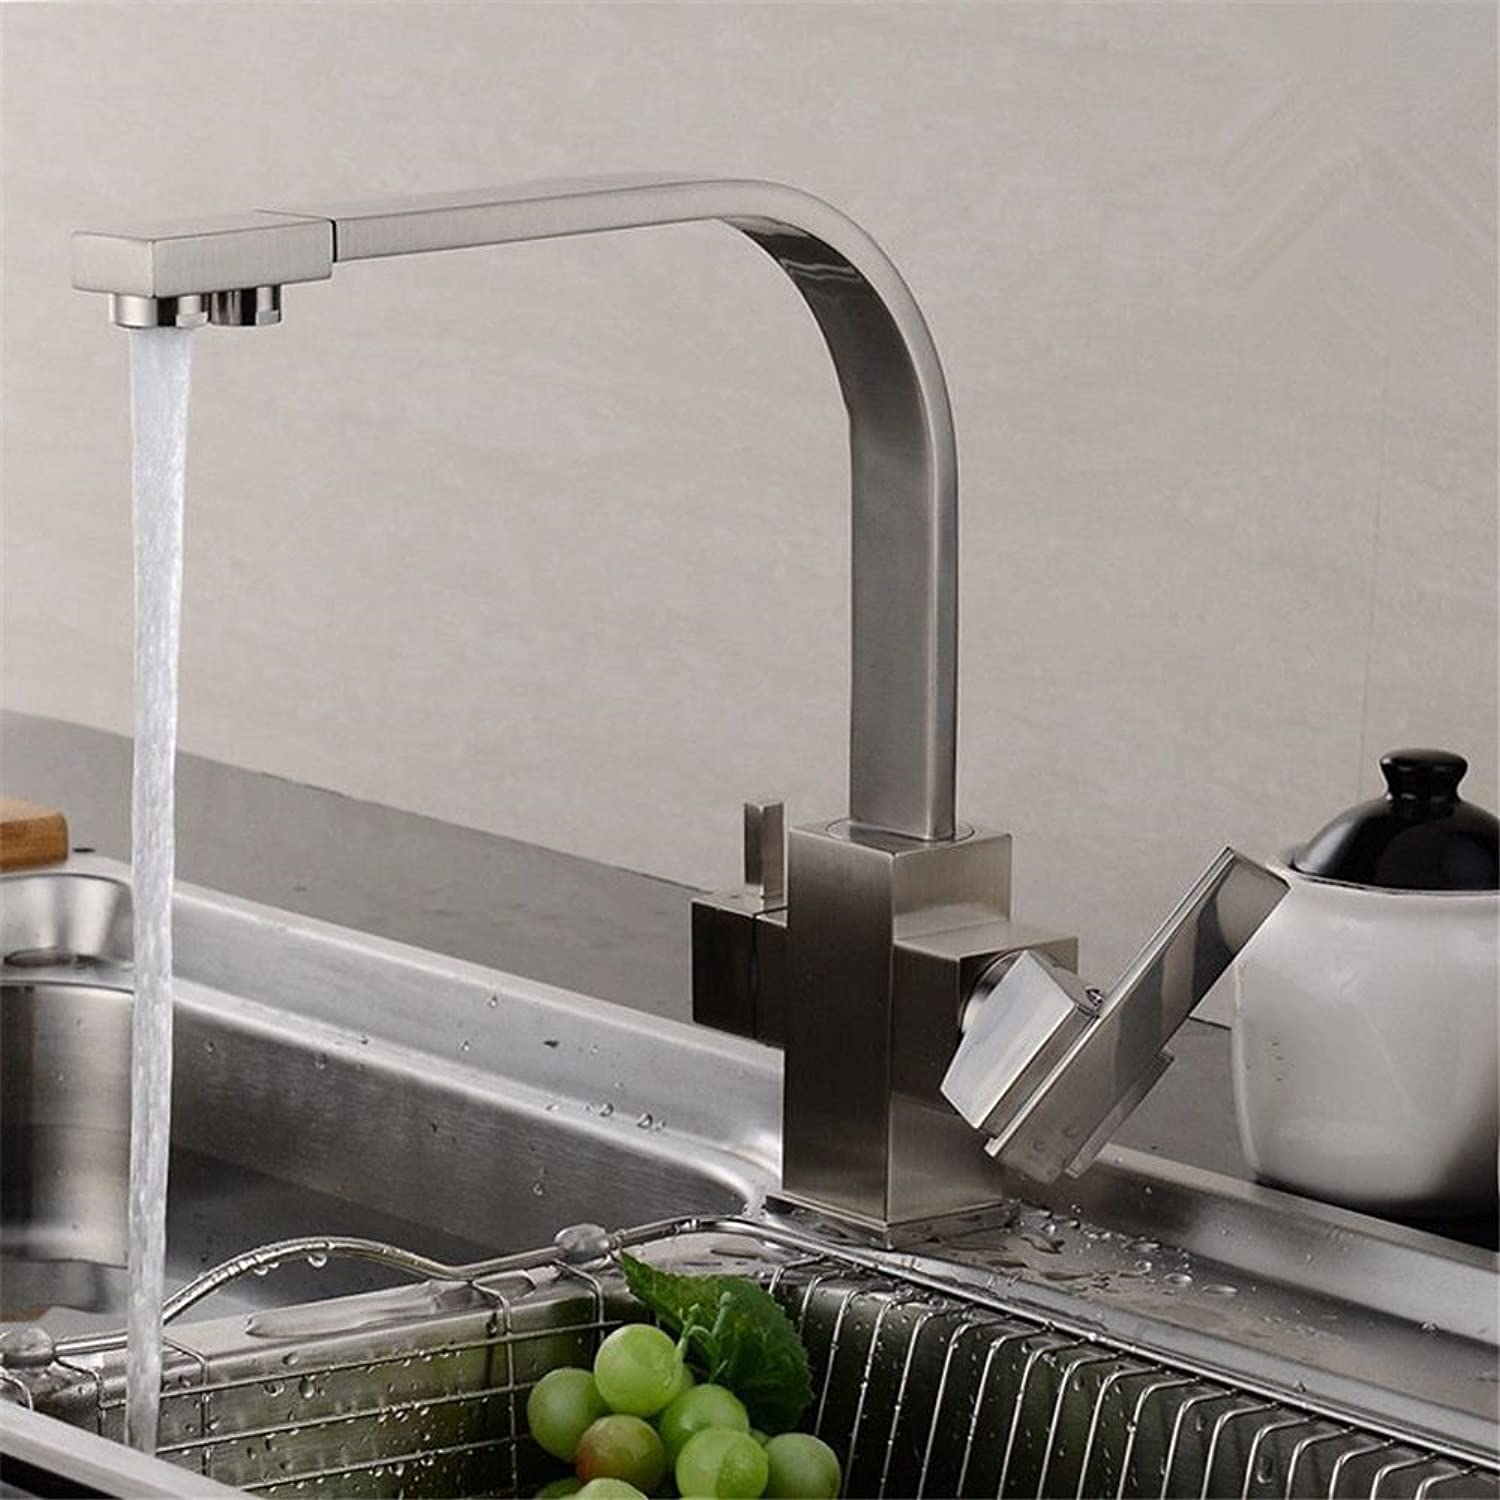 NewBorn Faucet Kitchen Or Bathroom Sink Mixer Tap The Brass Chrome 2-Hole Courseredation Sink Cold Water Water Tap Water Tap D